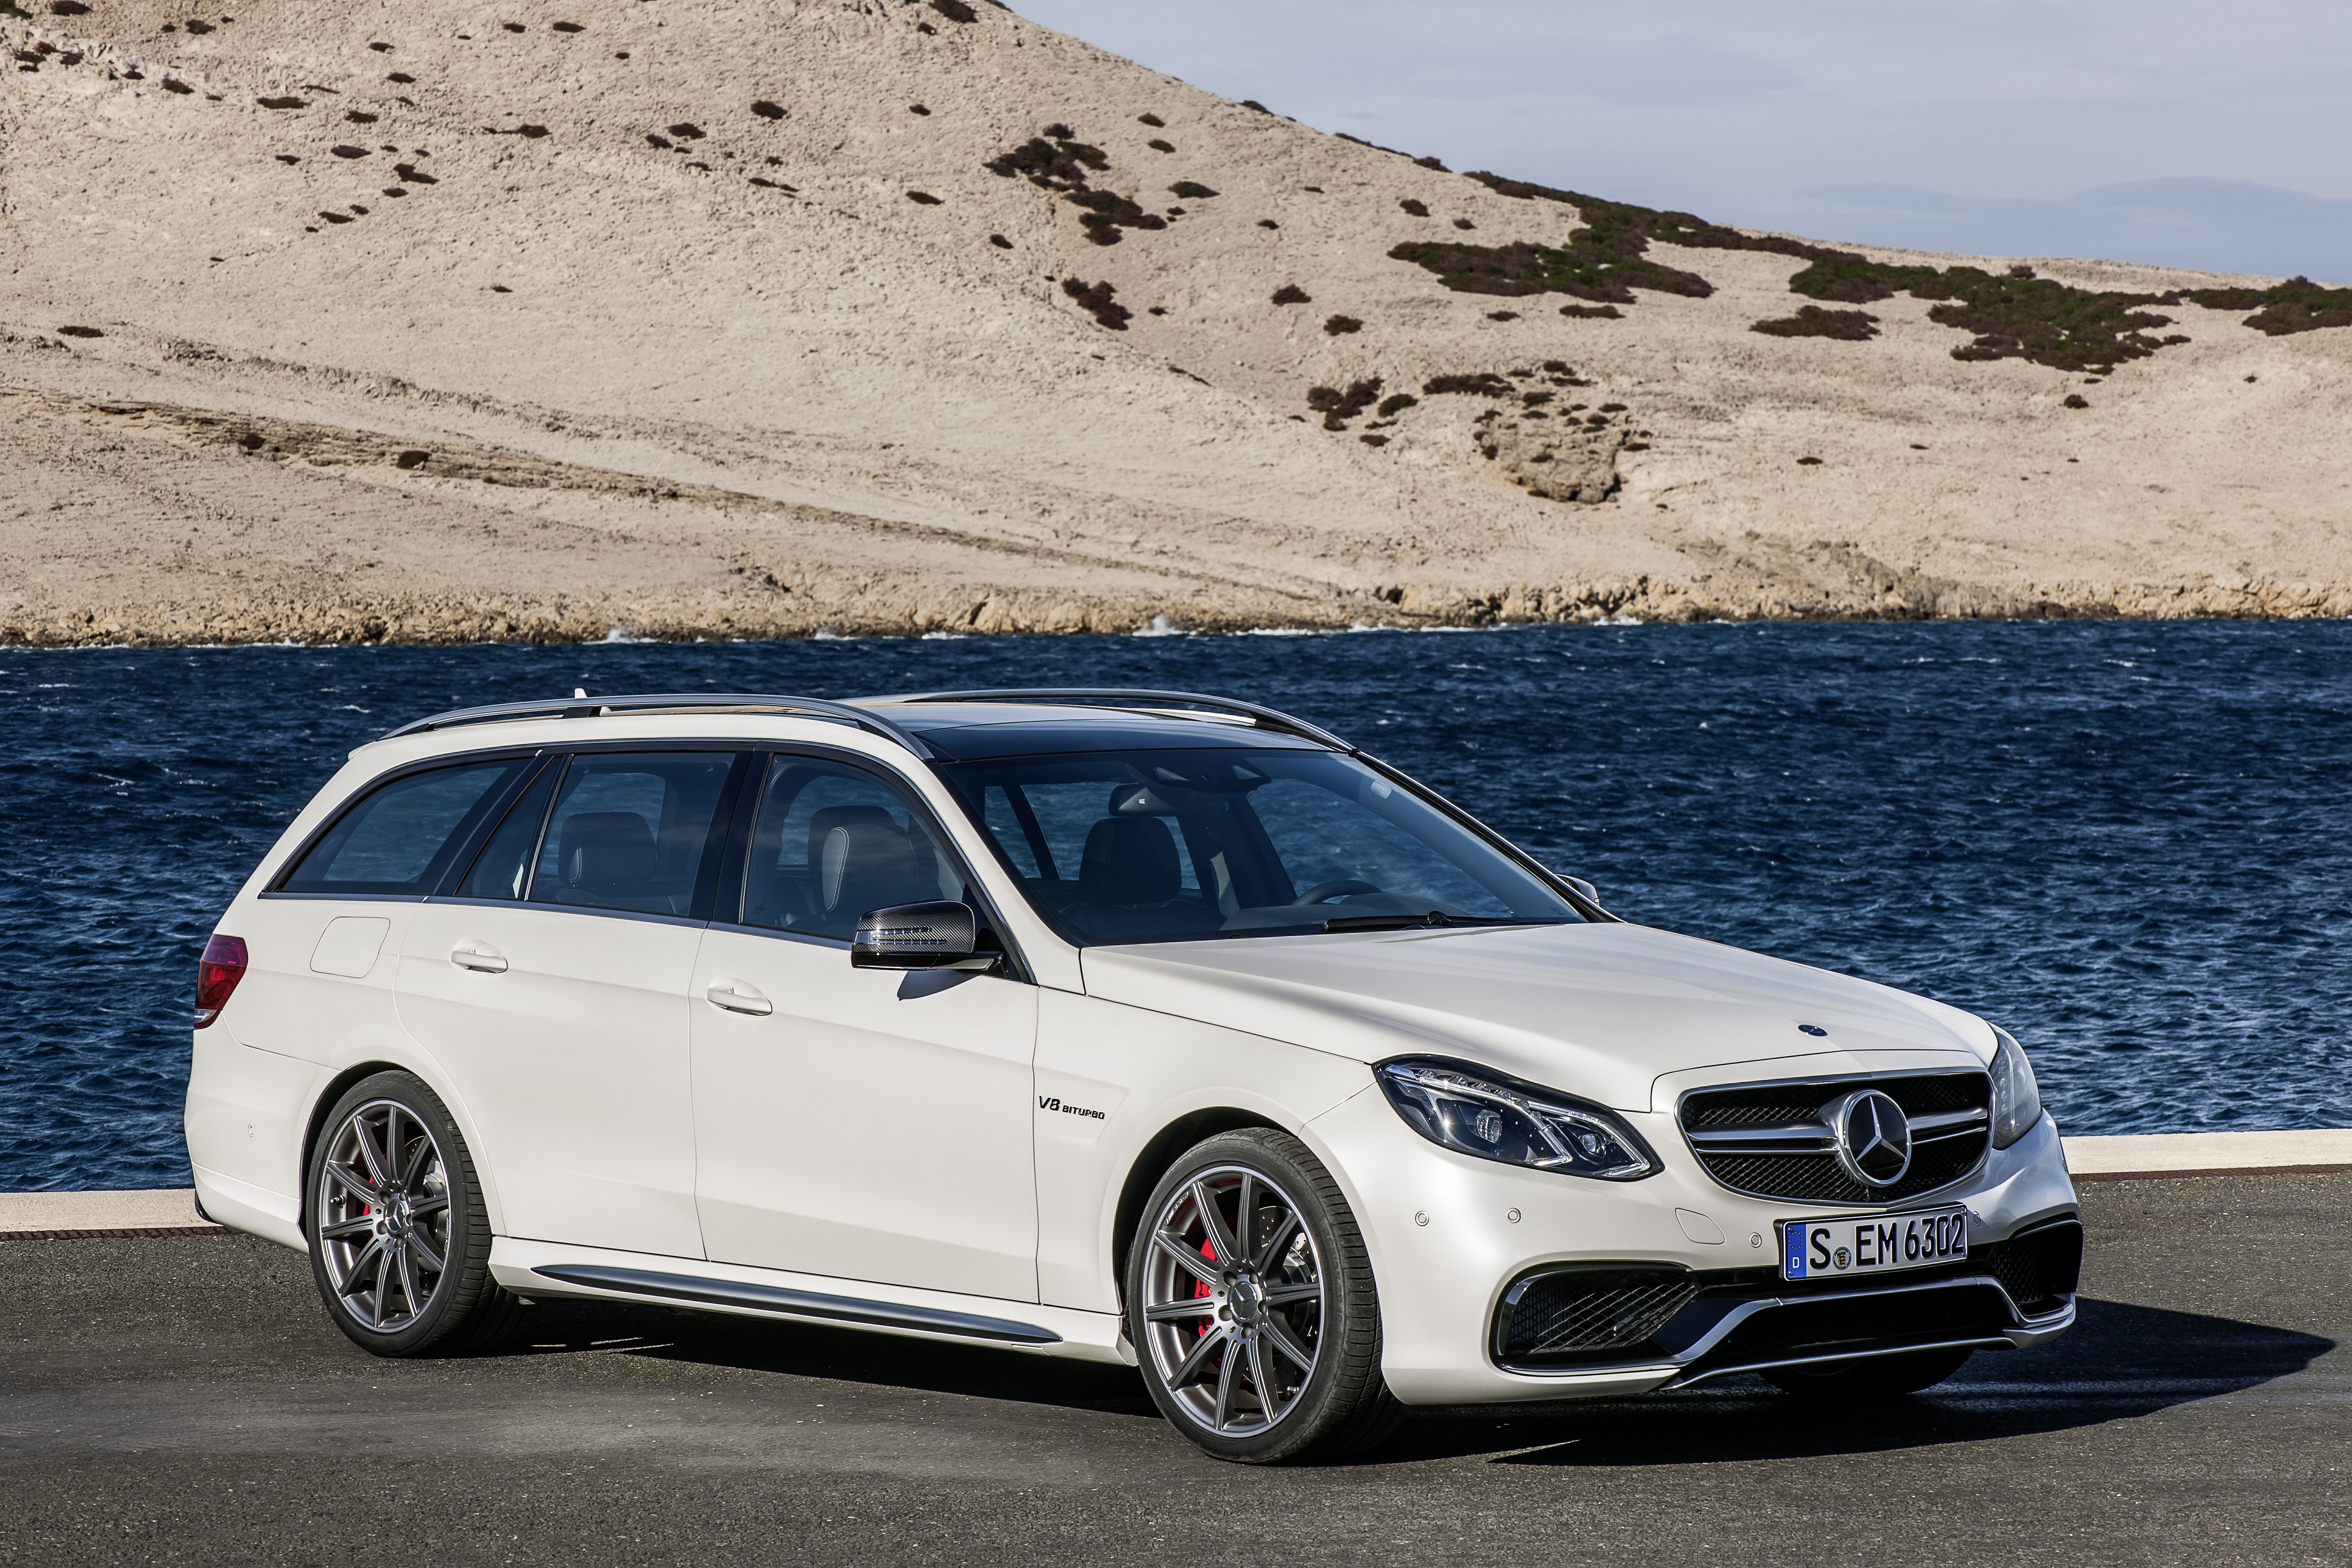 W212 mercedes benz e63 amg facelift unveiled now with for Mercedes benz options